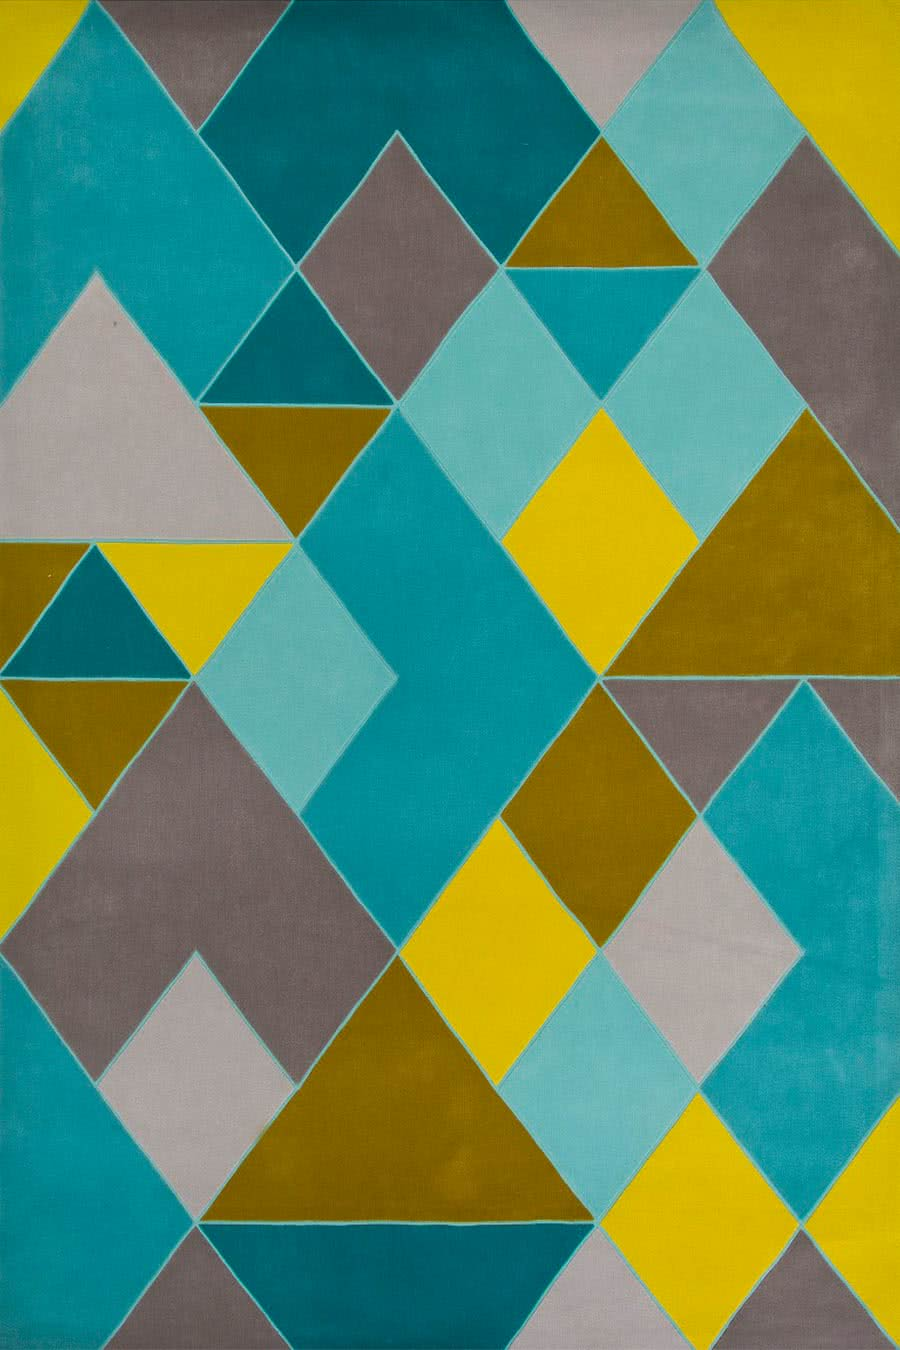 Detailed view of our geometric patterned Huxley rug in teal and yellow.